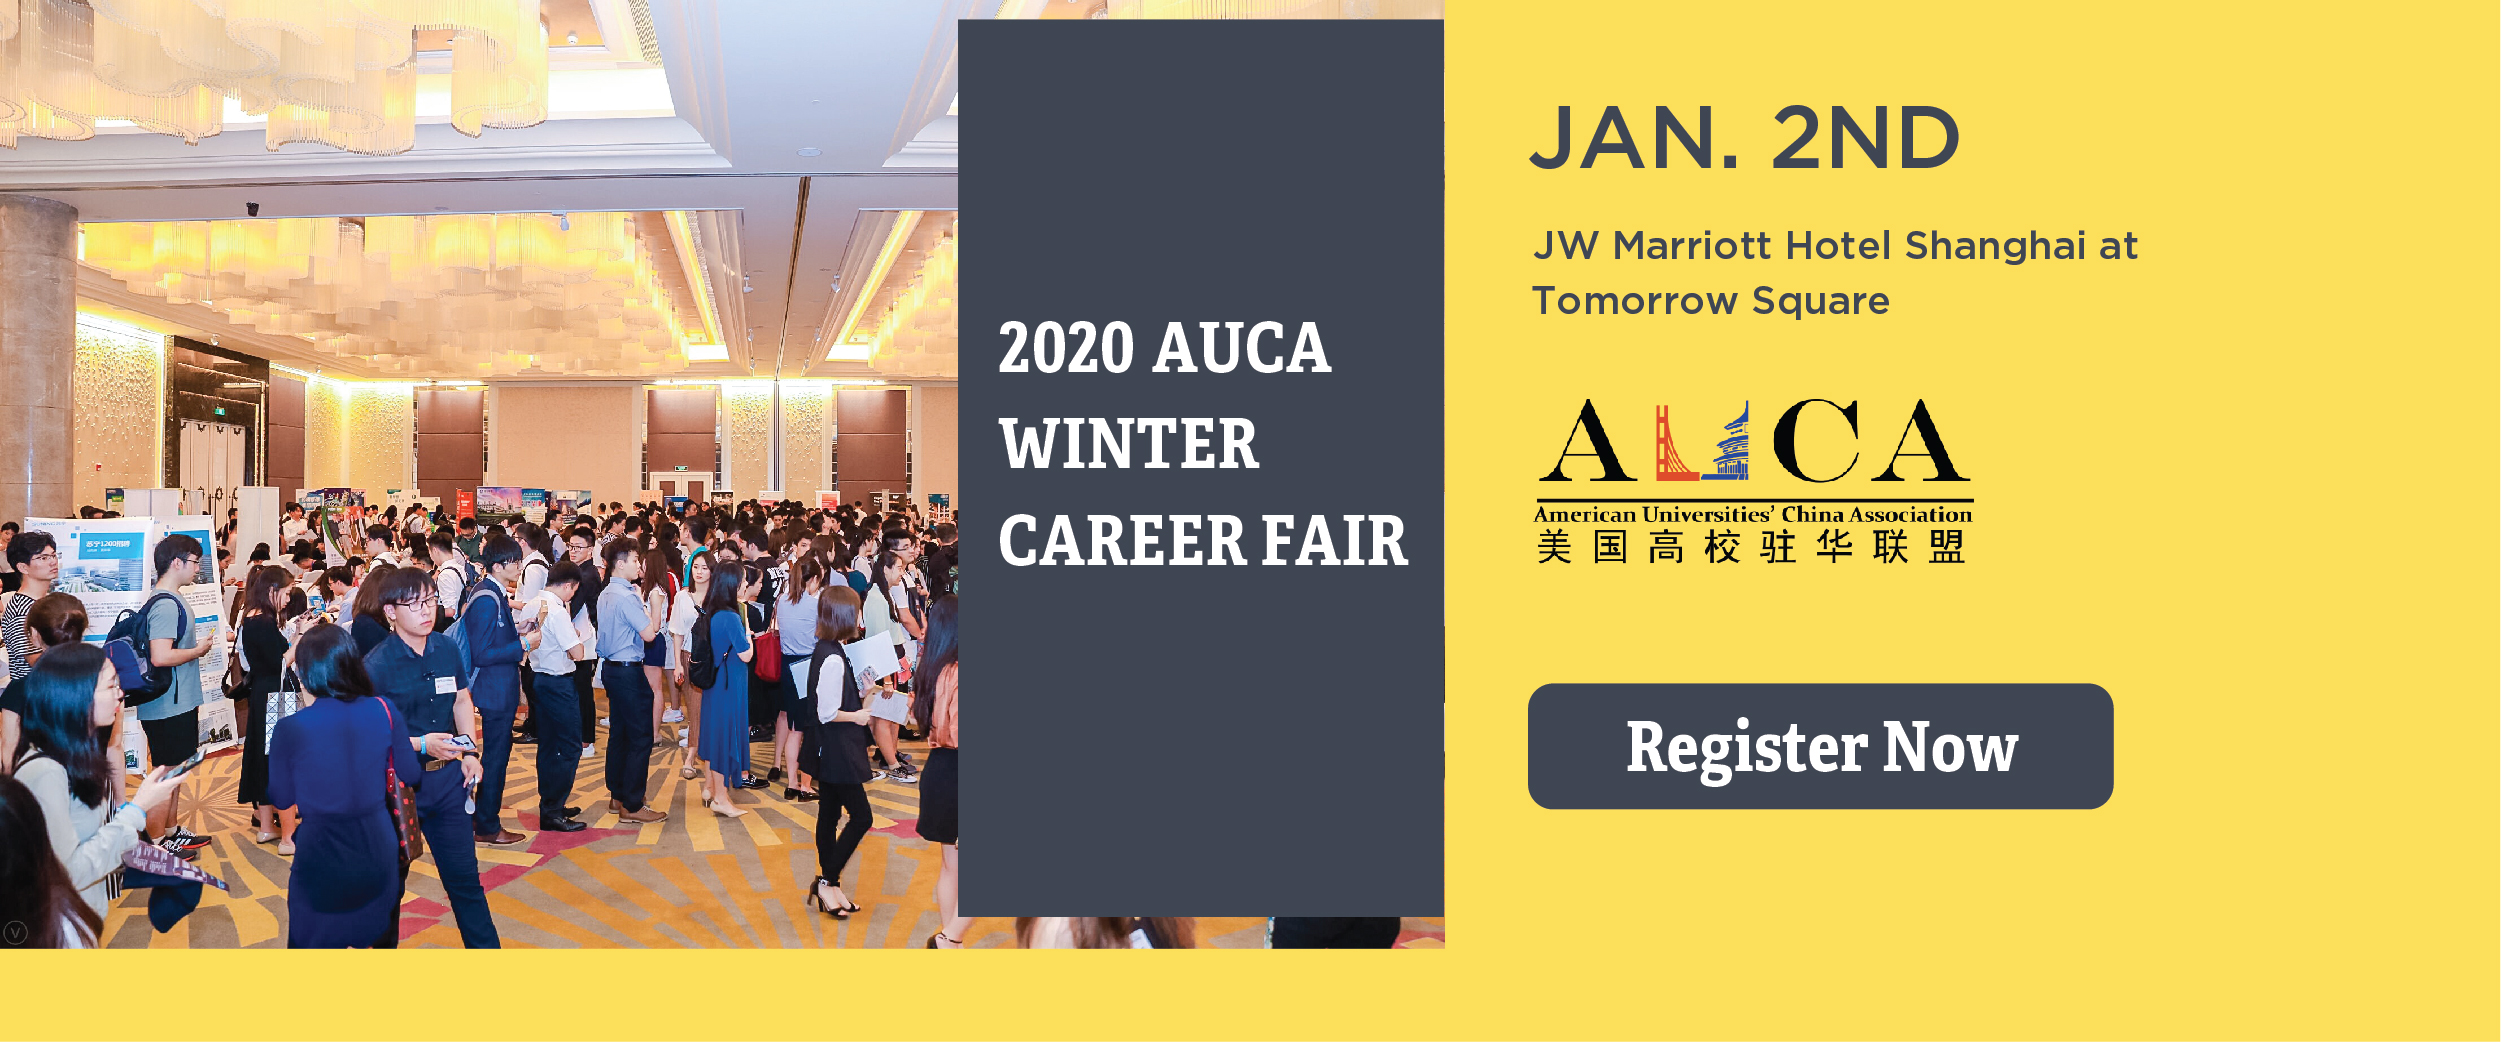 2020 AUCA Winter Career Fair on January 2nd at the JW Marriott Hotel Shanghai at Tomorrow Square. Register Now.